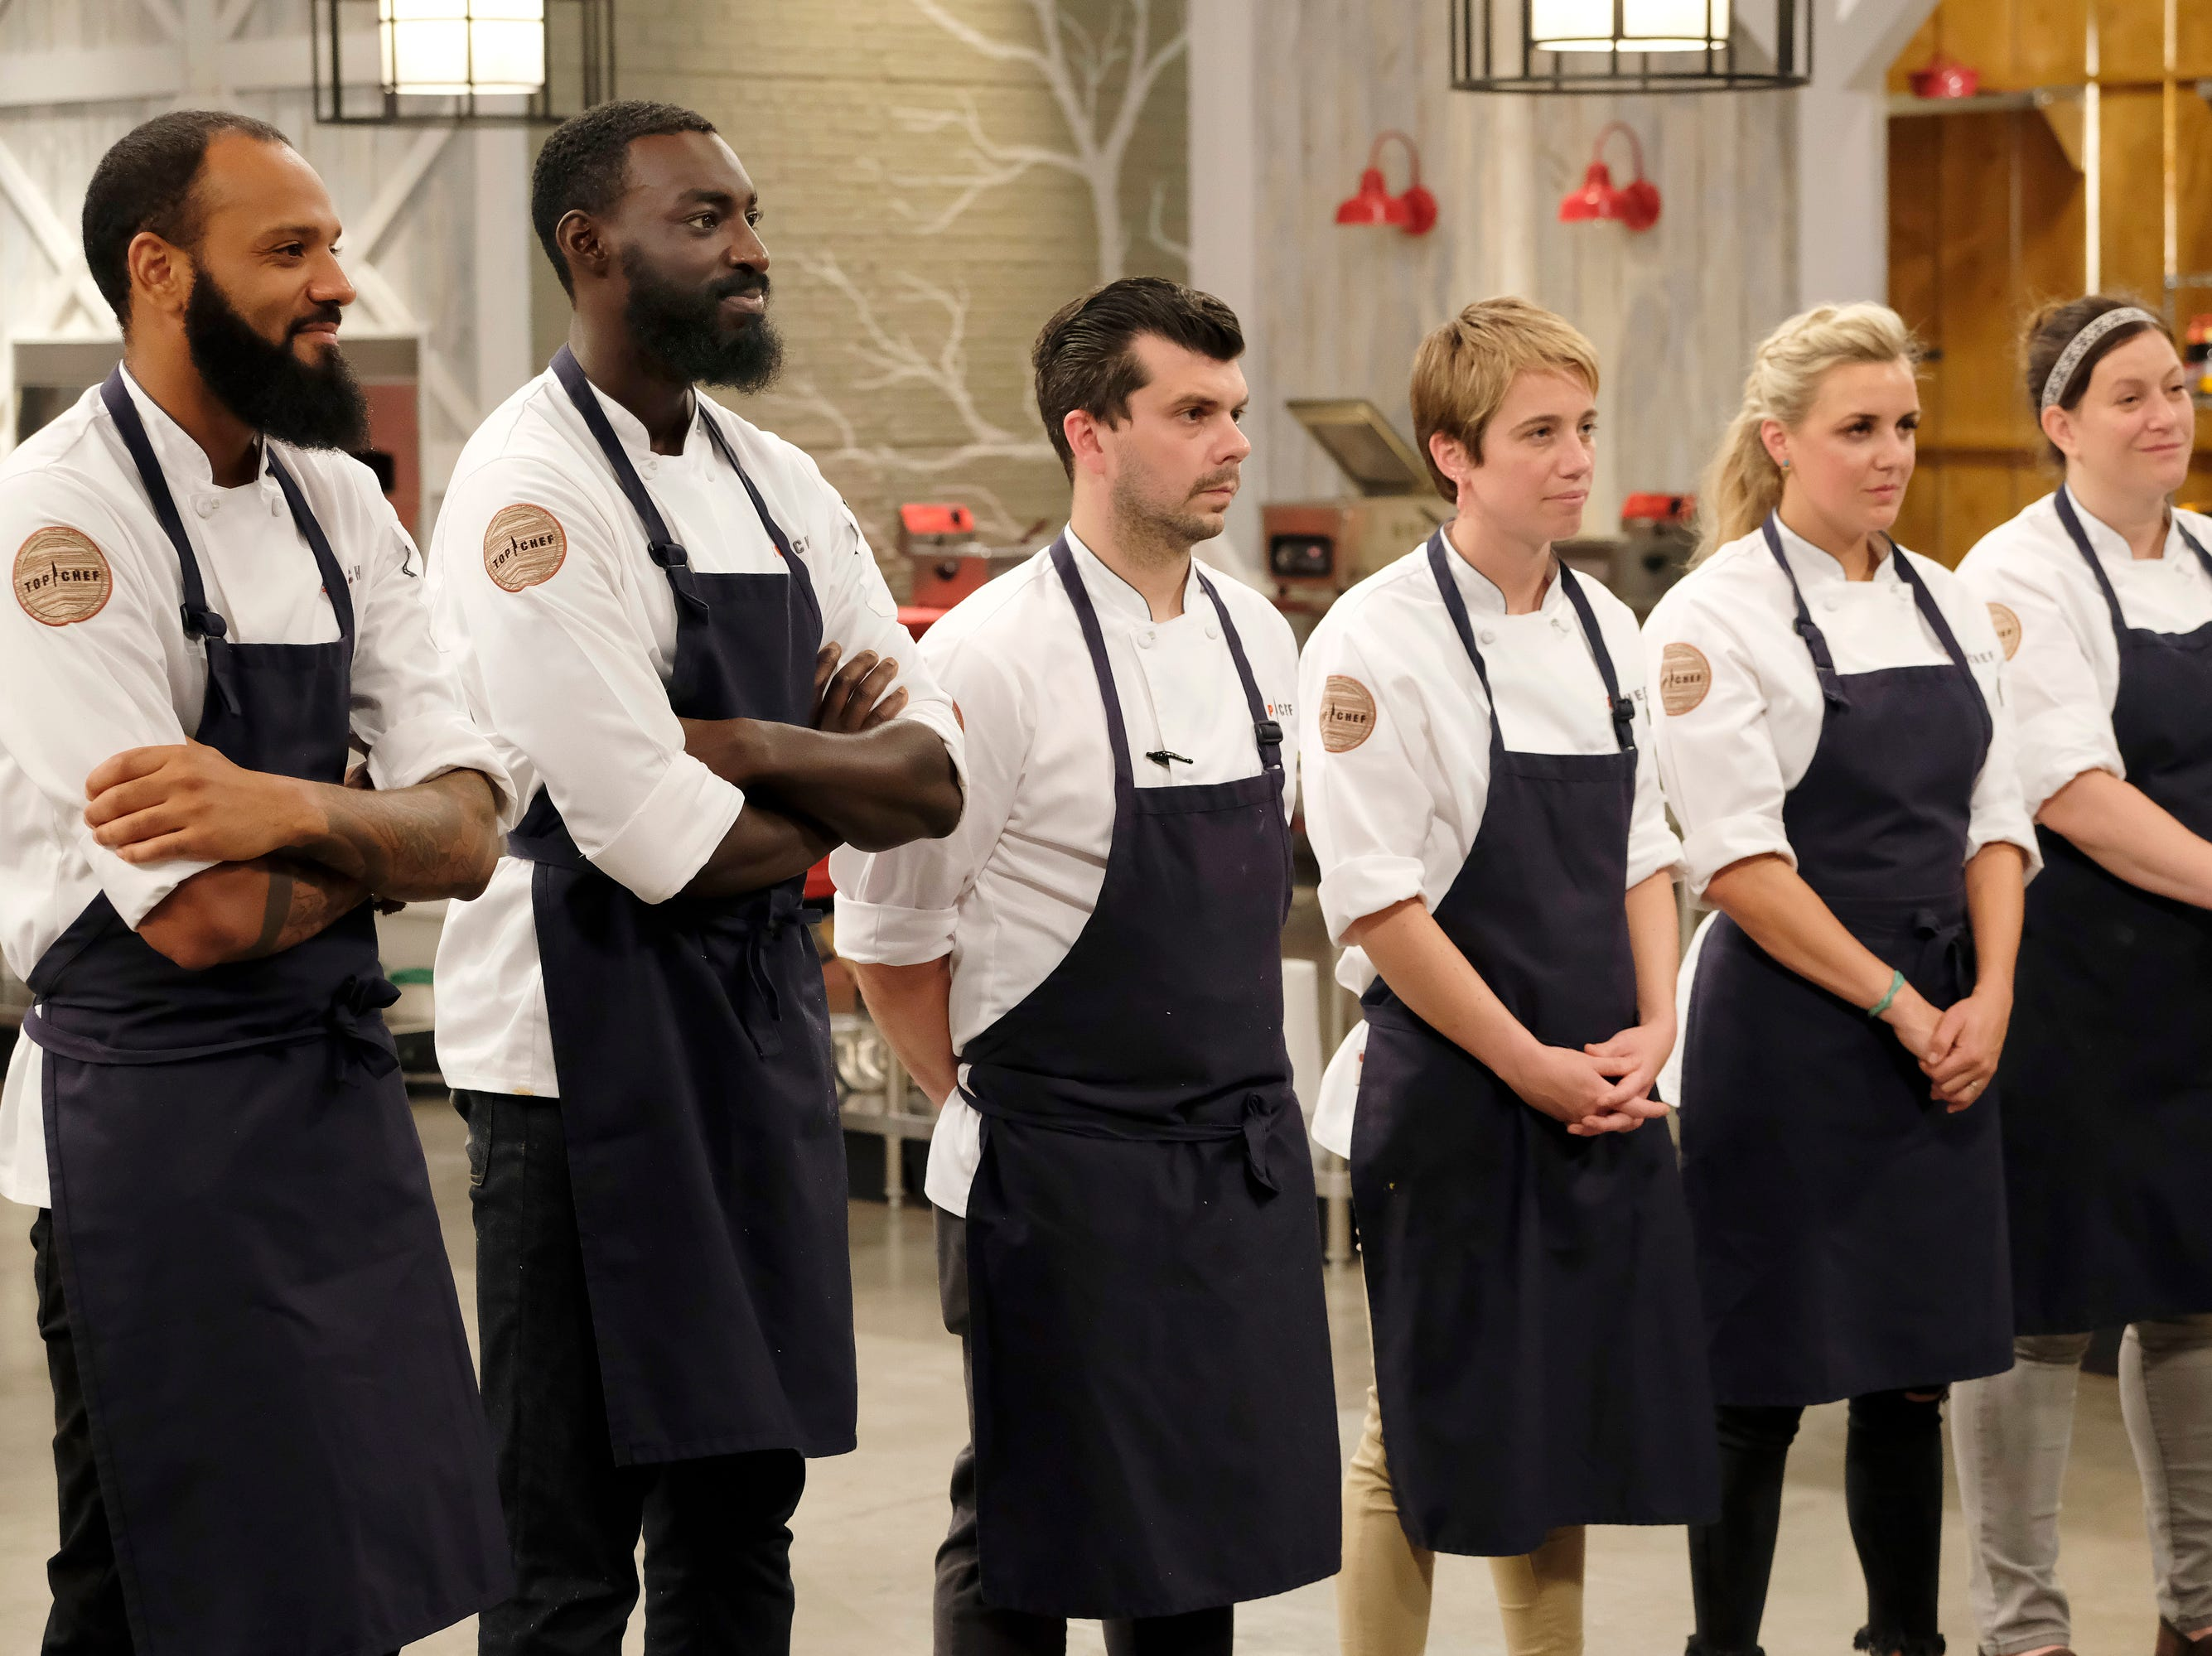 (From left to right): Contestants Justin Sutherland, Eric Adjepong, Eddie Konrad, Adrienne Wright, Kelsey Barnard and Sara Bradley on episode 11 of Bravo's 'Top Chef:' Kentucky season.